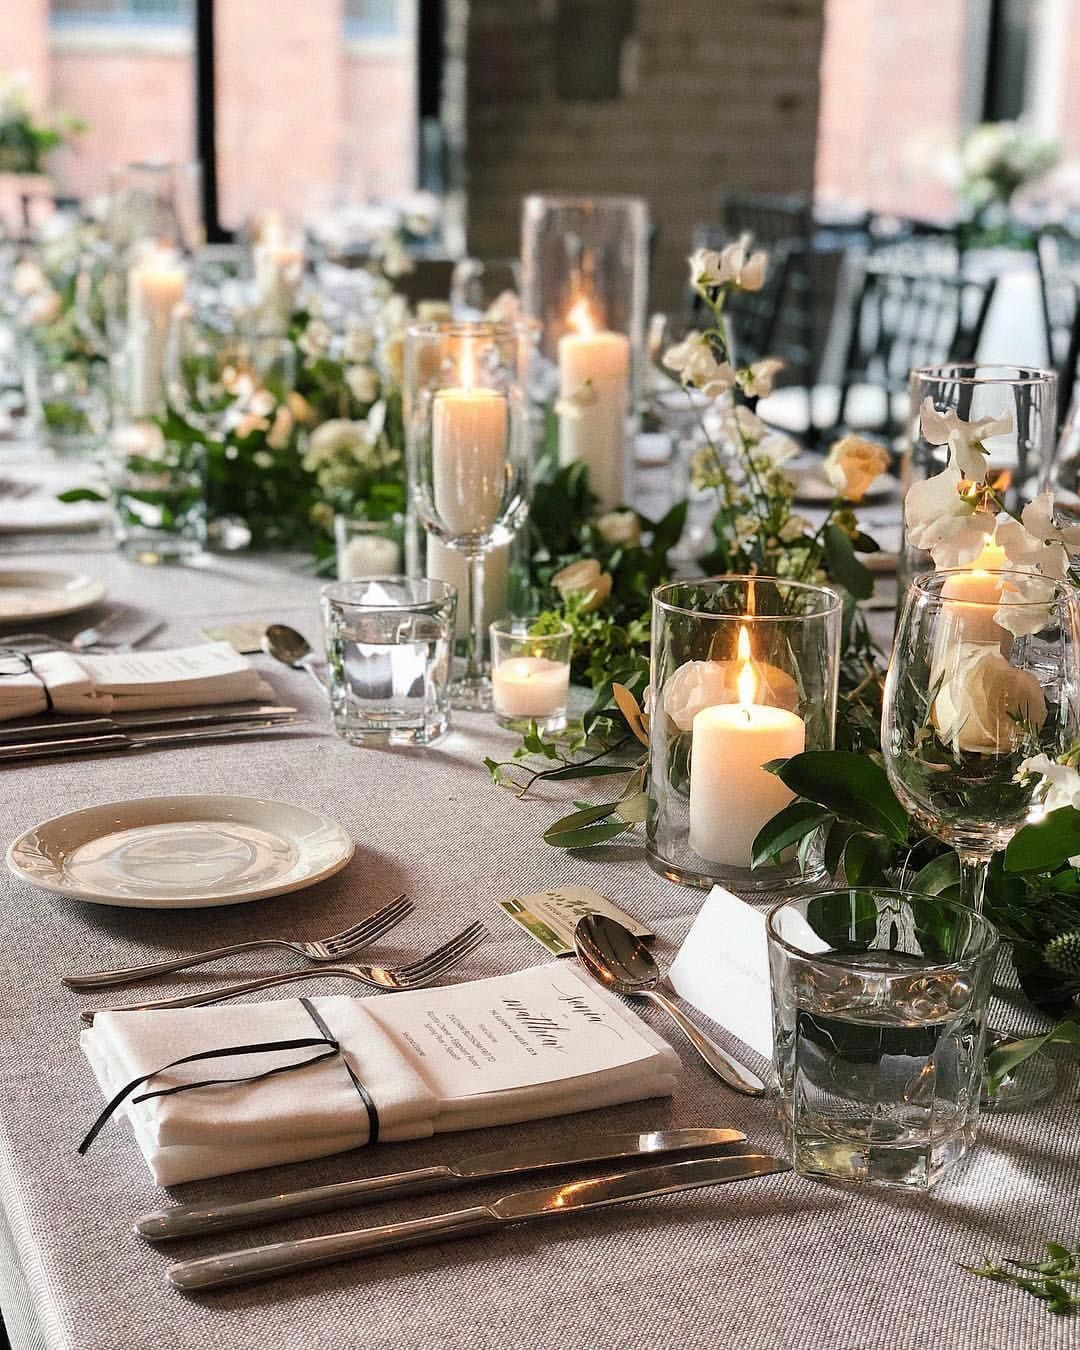 Rustic Wedding Decorations For Indoor And Outdoor Settings: Wedding Table Decorations, Wedding